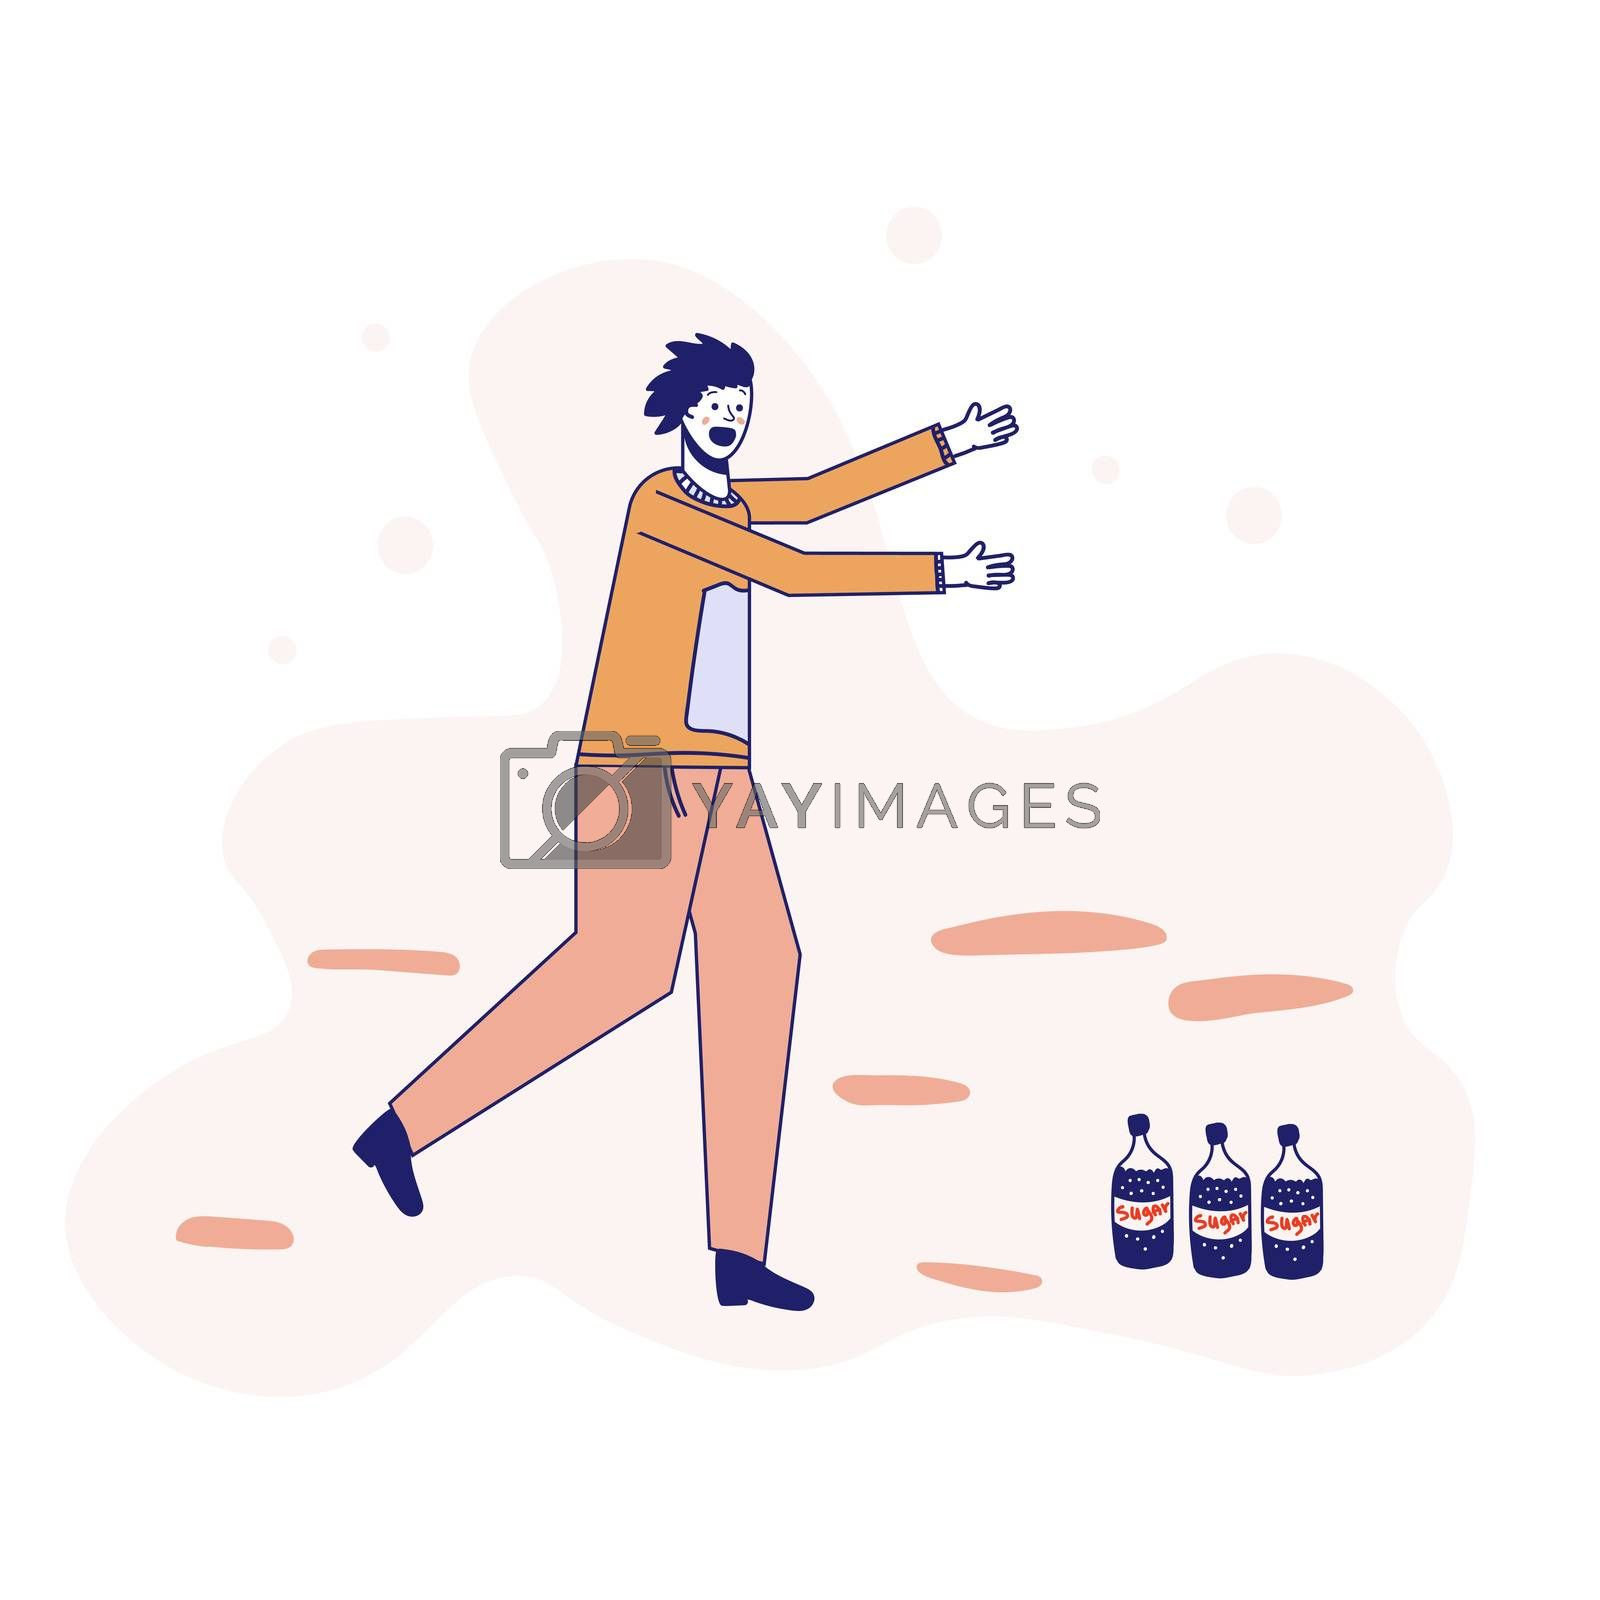 Soda addiction concept illustration. The man runs to the soda bottles. An unhealthy lifestyle, unhealthy diet, and a sweet tooth. illustration. Lines.